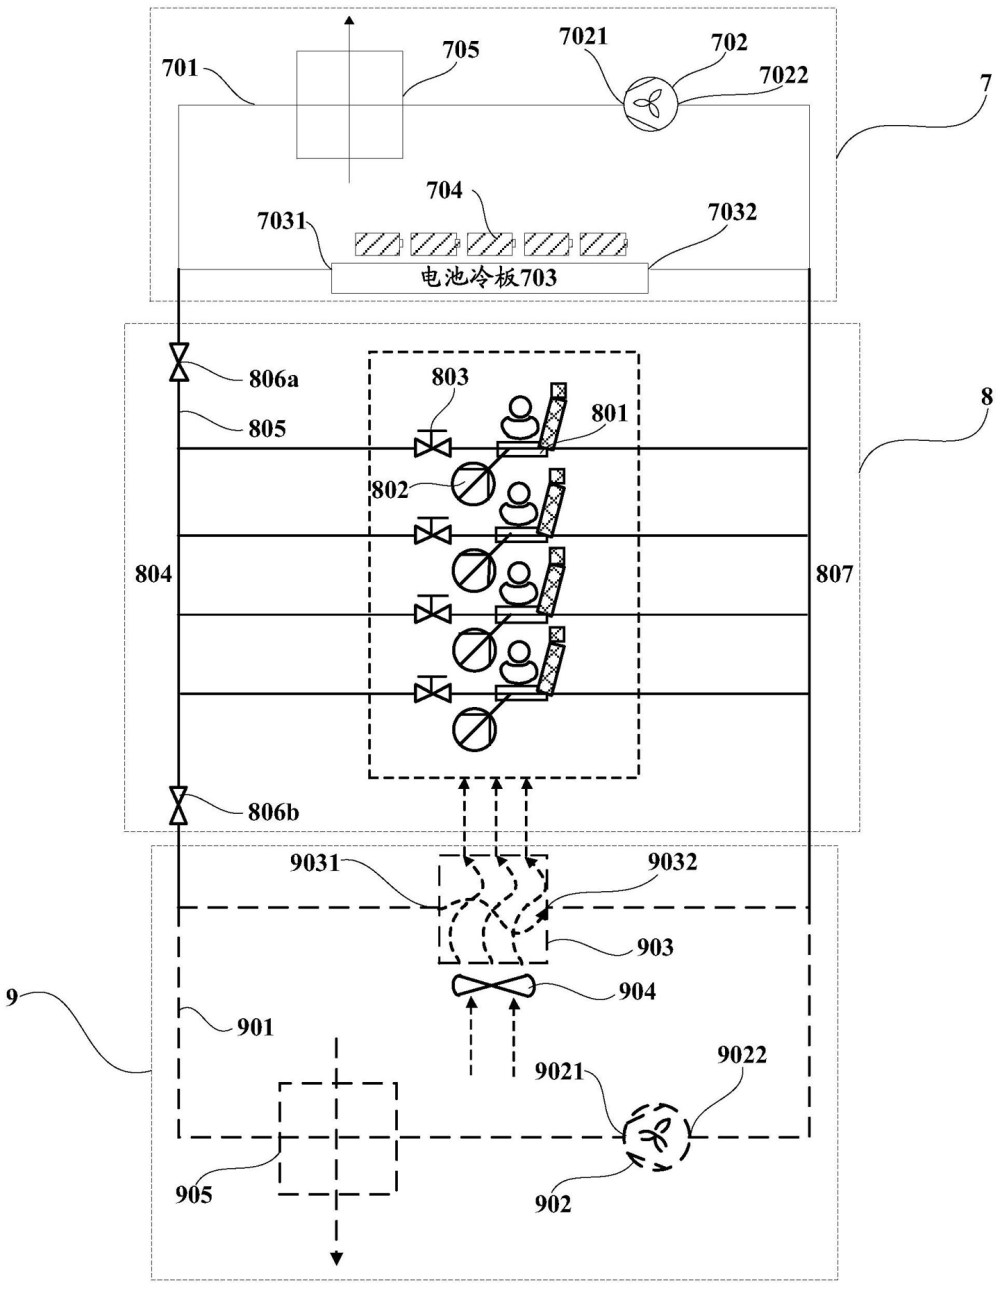 Huawei thermal management system and electric vehicle patent